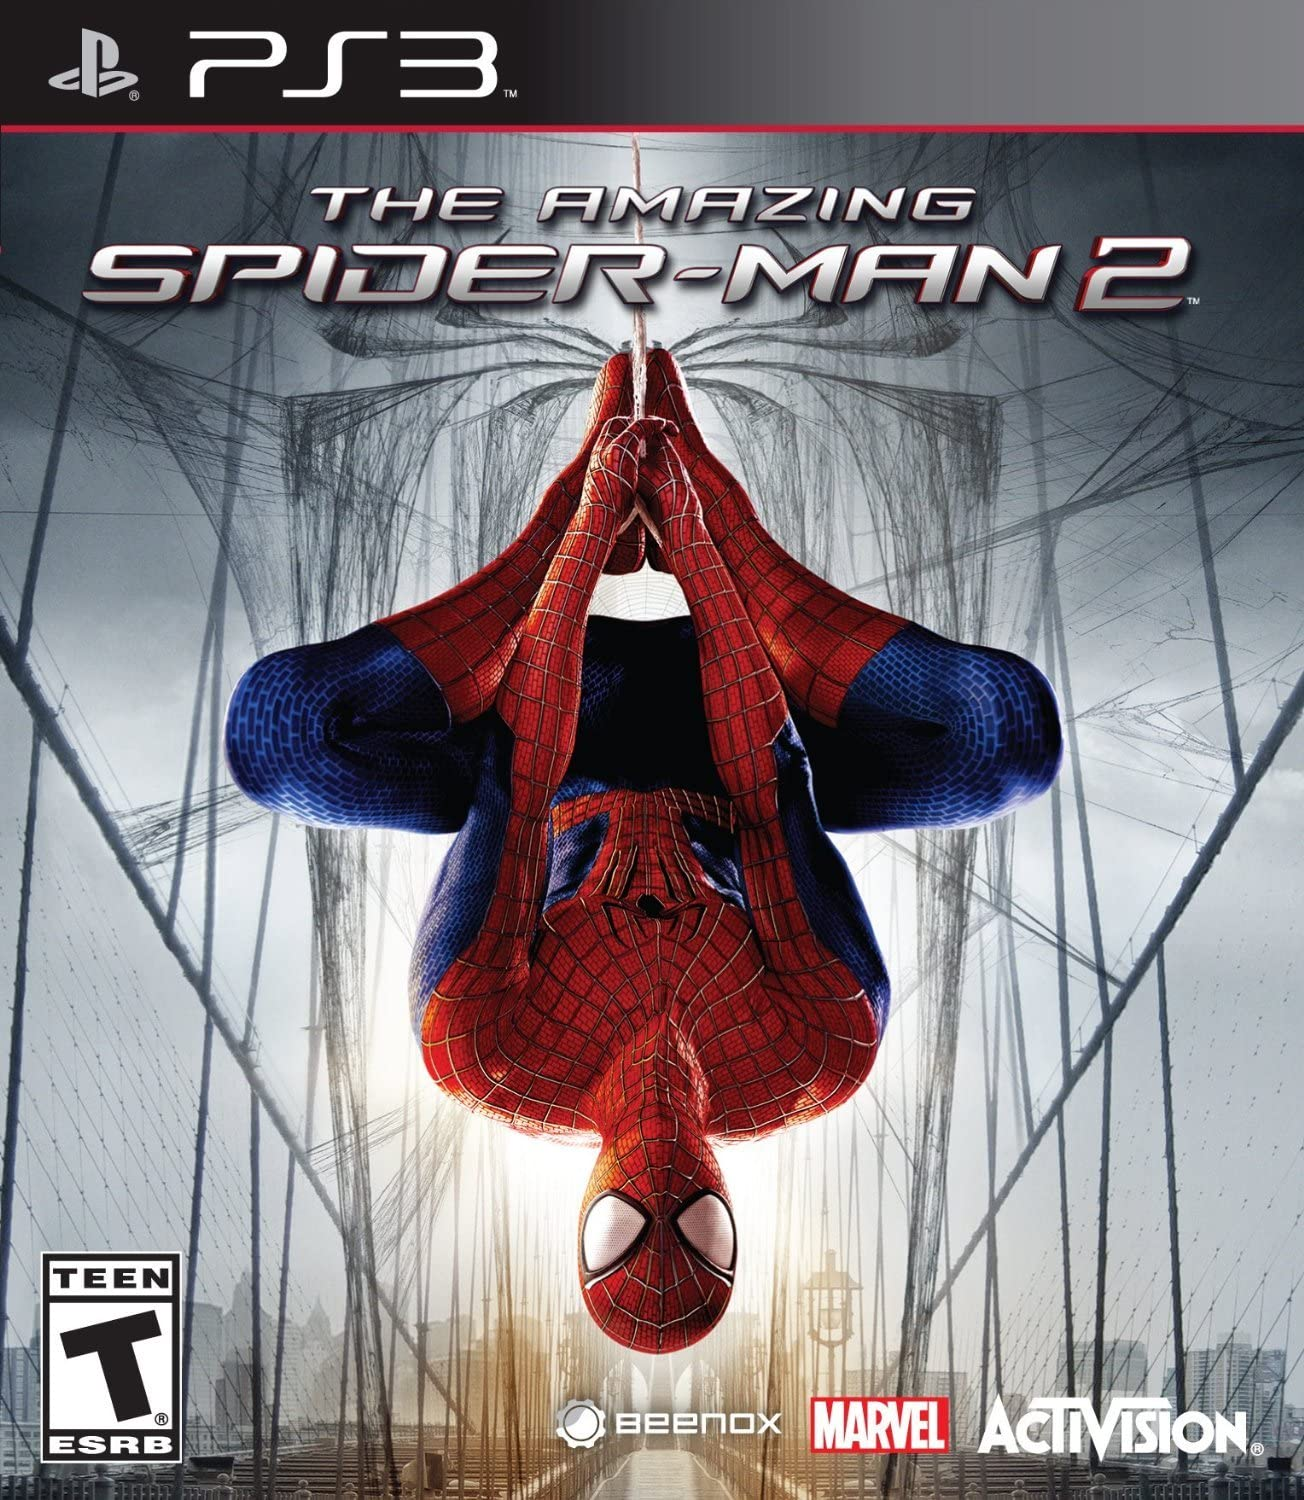 The Amazing Spider-Man 2 - PlayStation 3